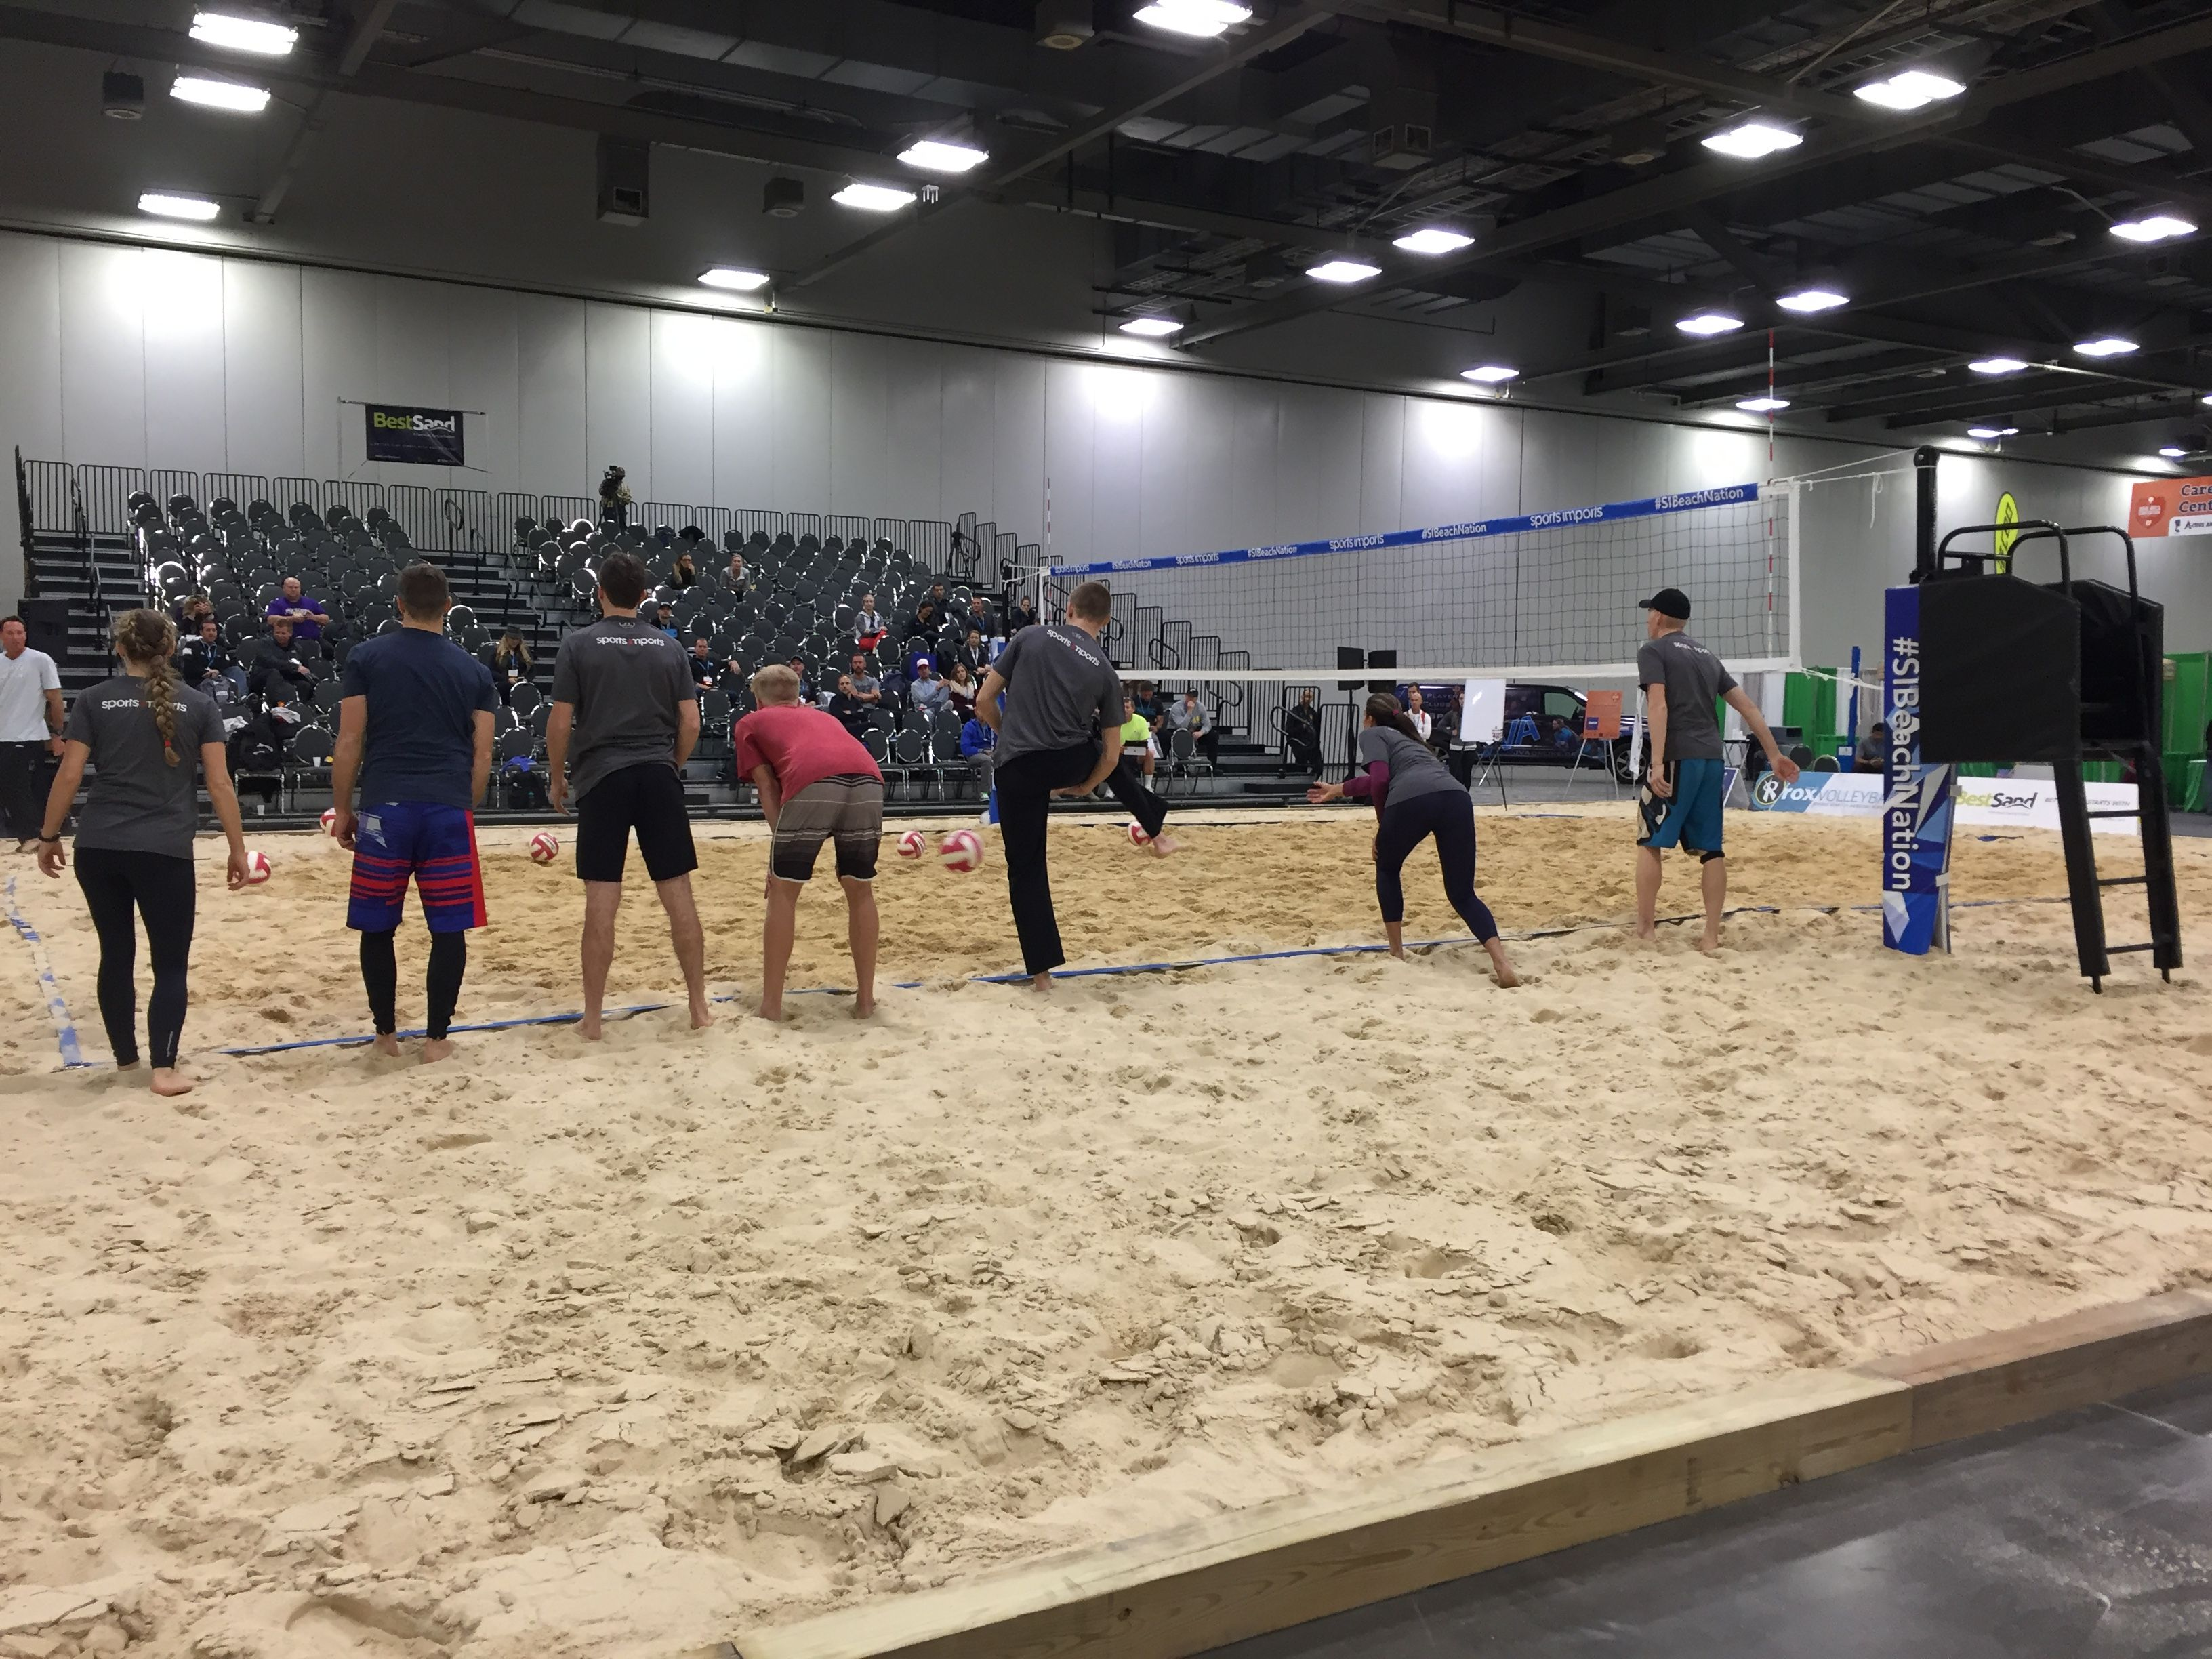 Beach Volleyball Equipment At The Avca Convention In Columbus Ohio Volleyball Equipment Beach Volleyball Volleyball